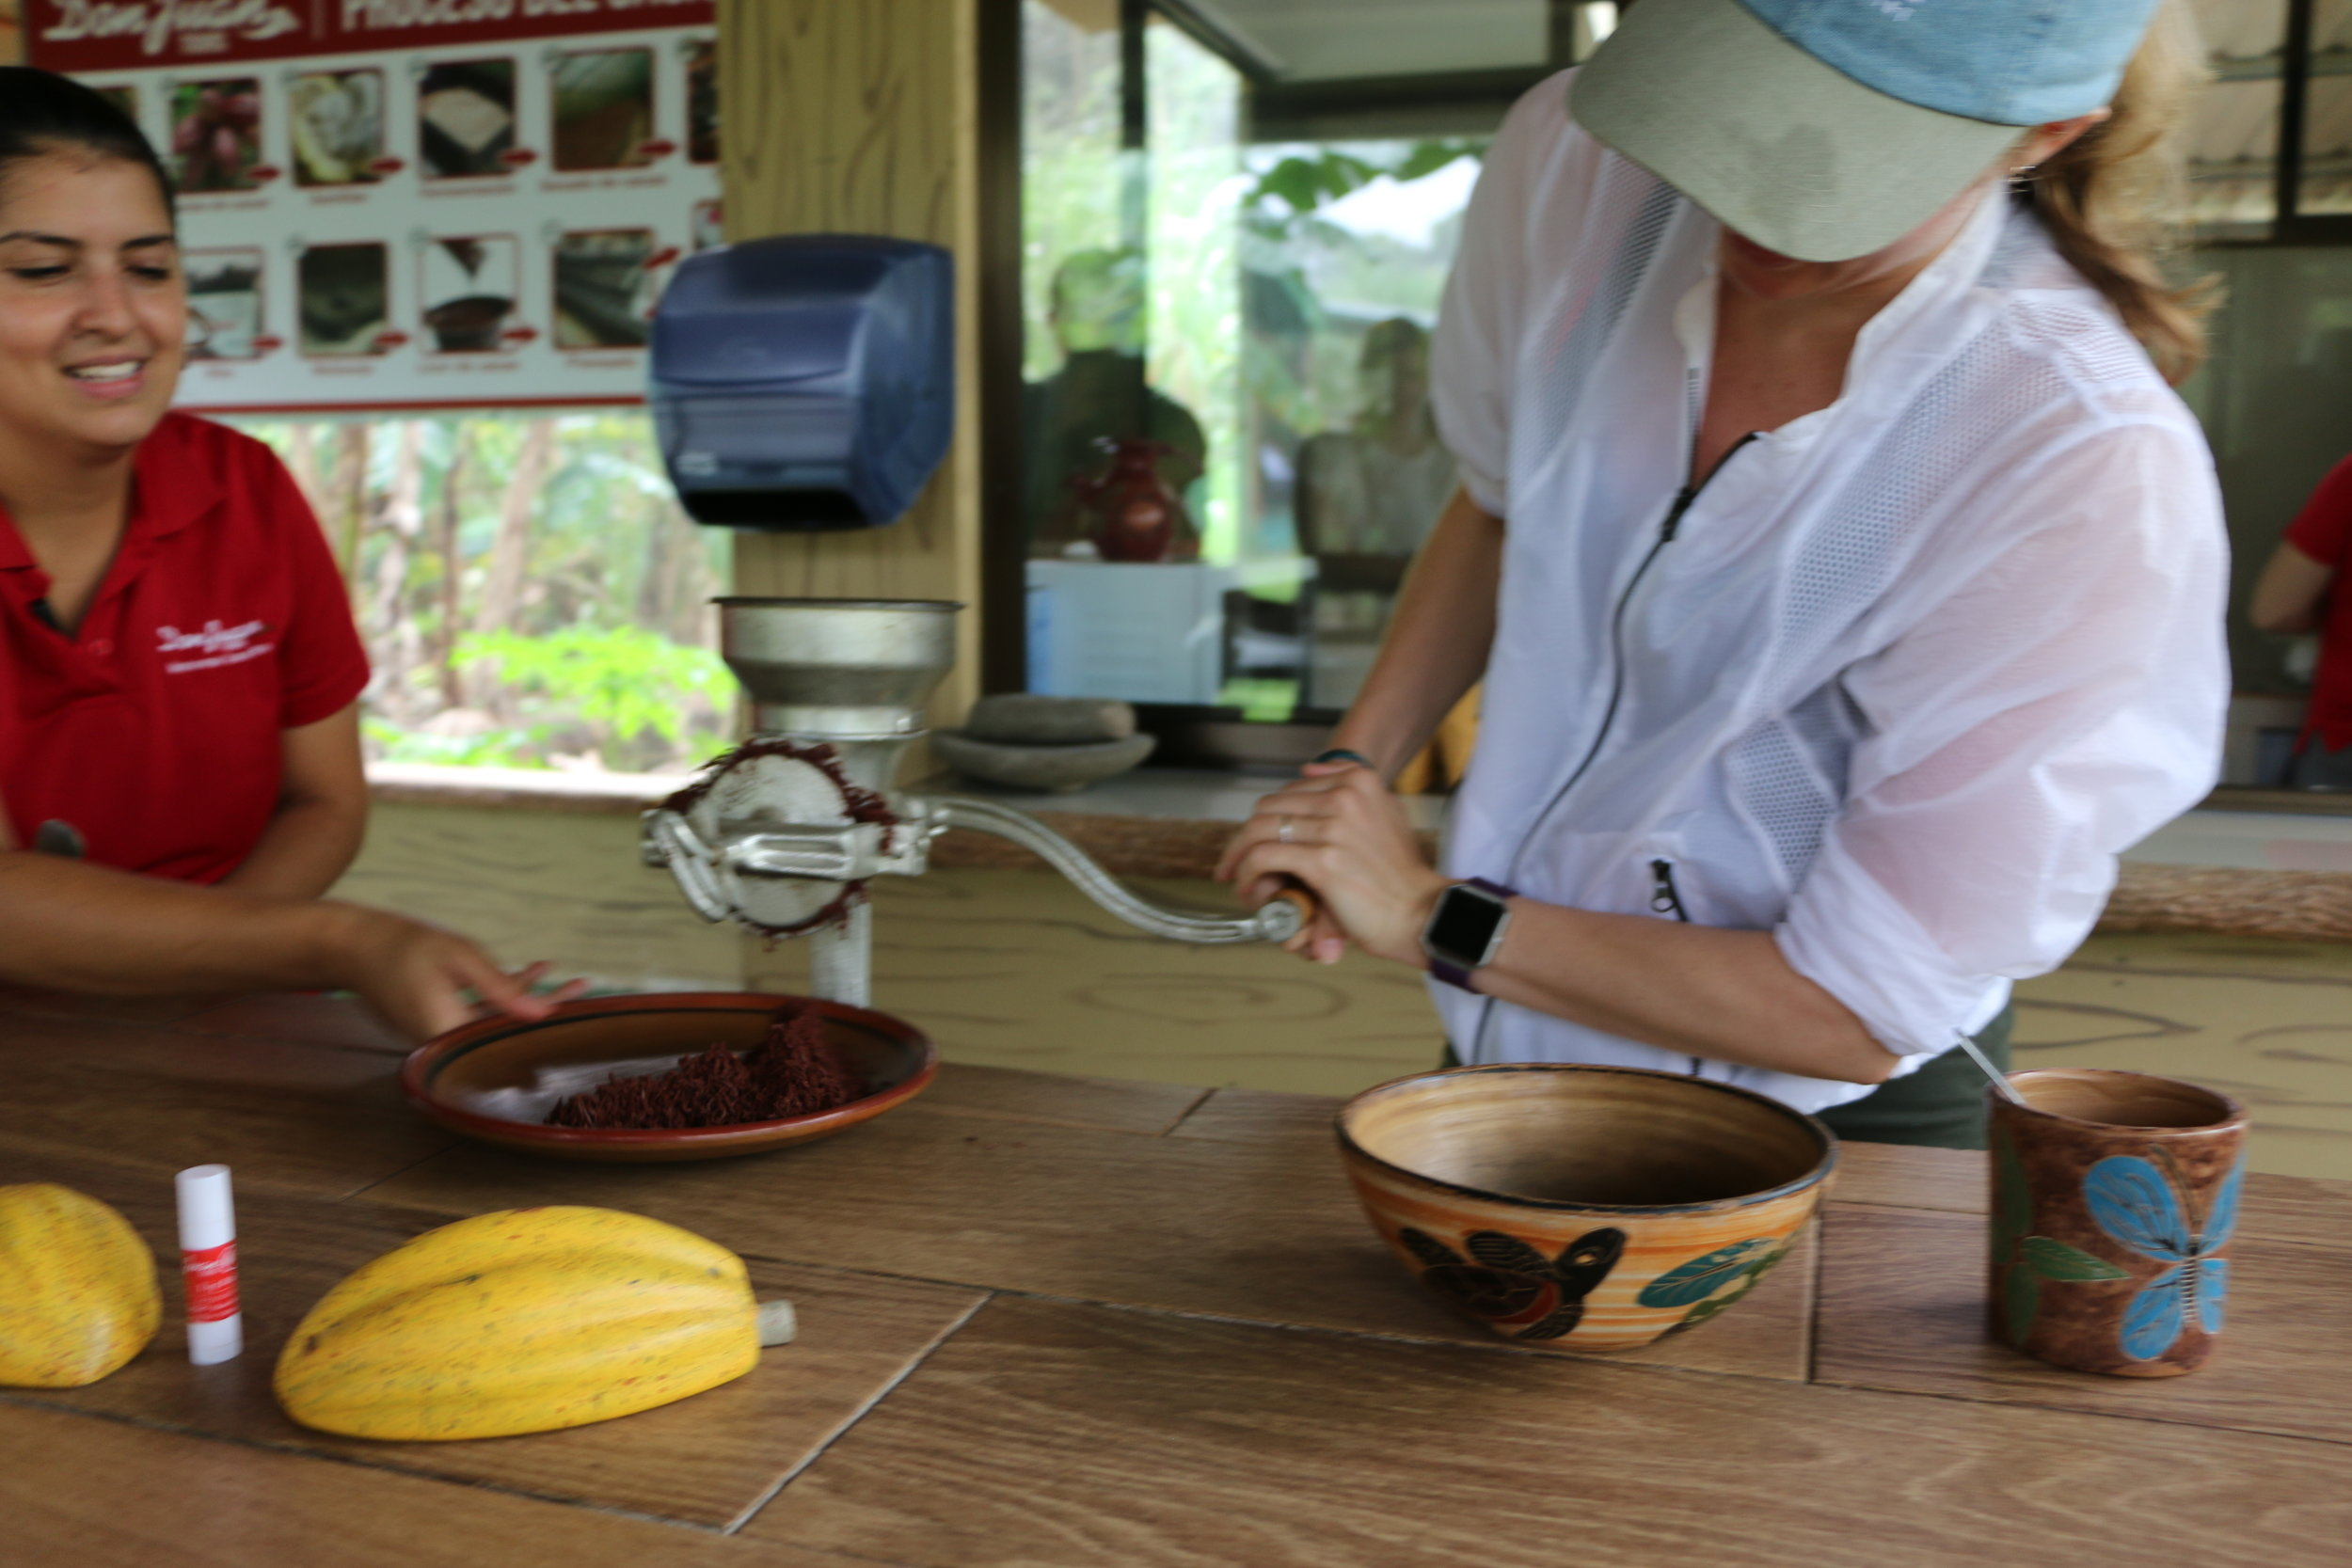 Me taking a crack at grinding the roasted cacao nibs into a paste to make all the chocolate-y goodness! Notice the tube of cacao butter next to the fruit - I definitely rubbed it all over my sun burned face.